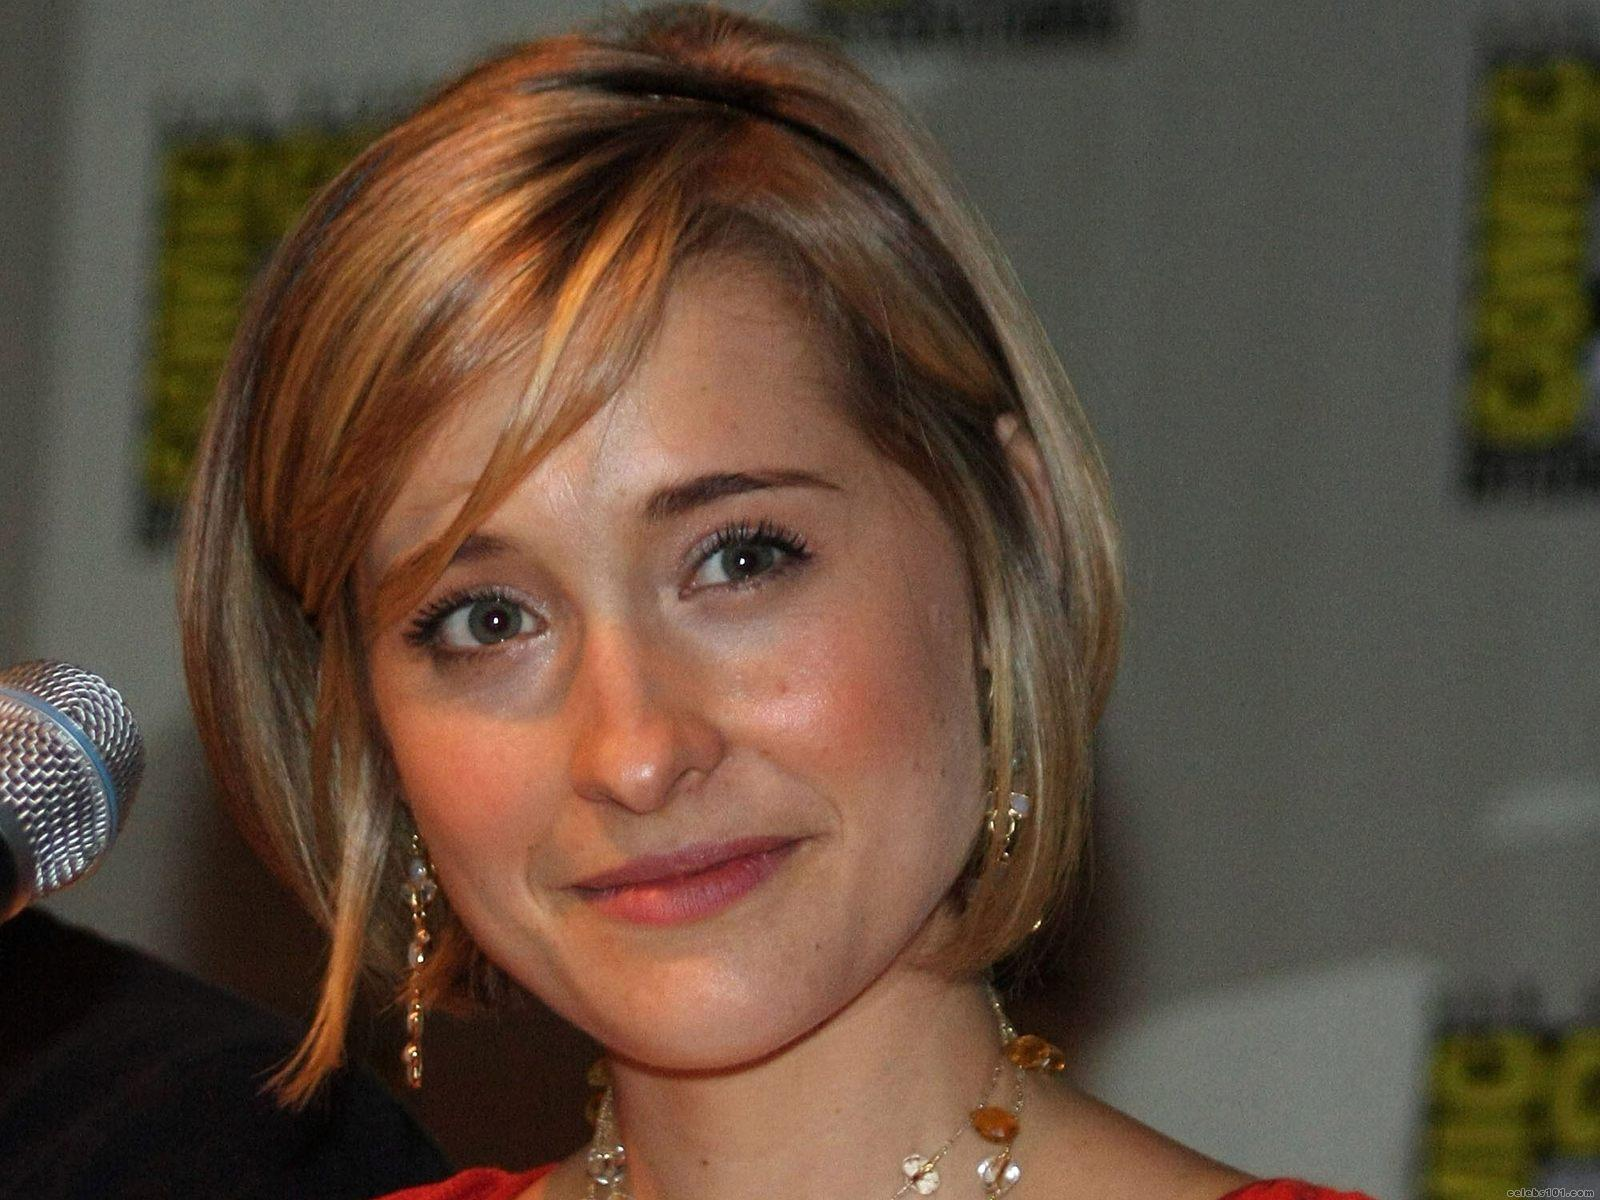 Allison Mack High quality wallpaper size 1600x1200 of Allison Mack 1600x1200